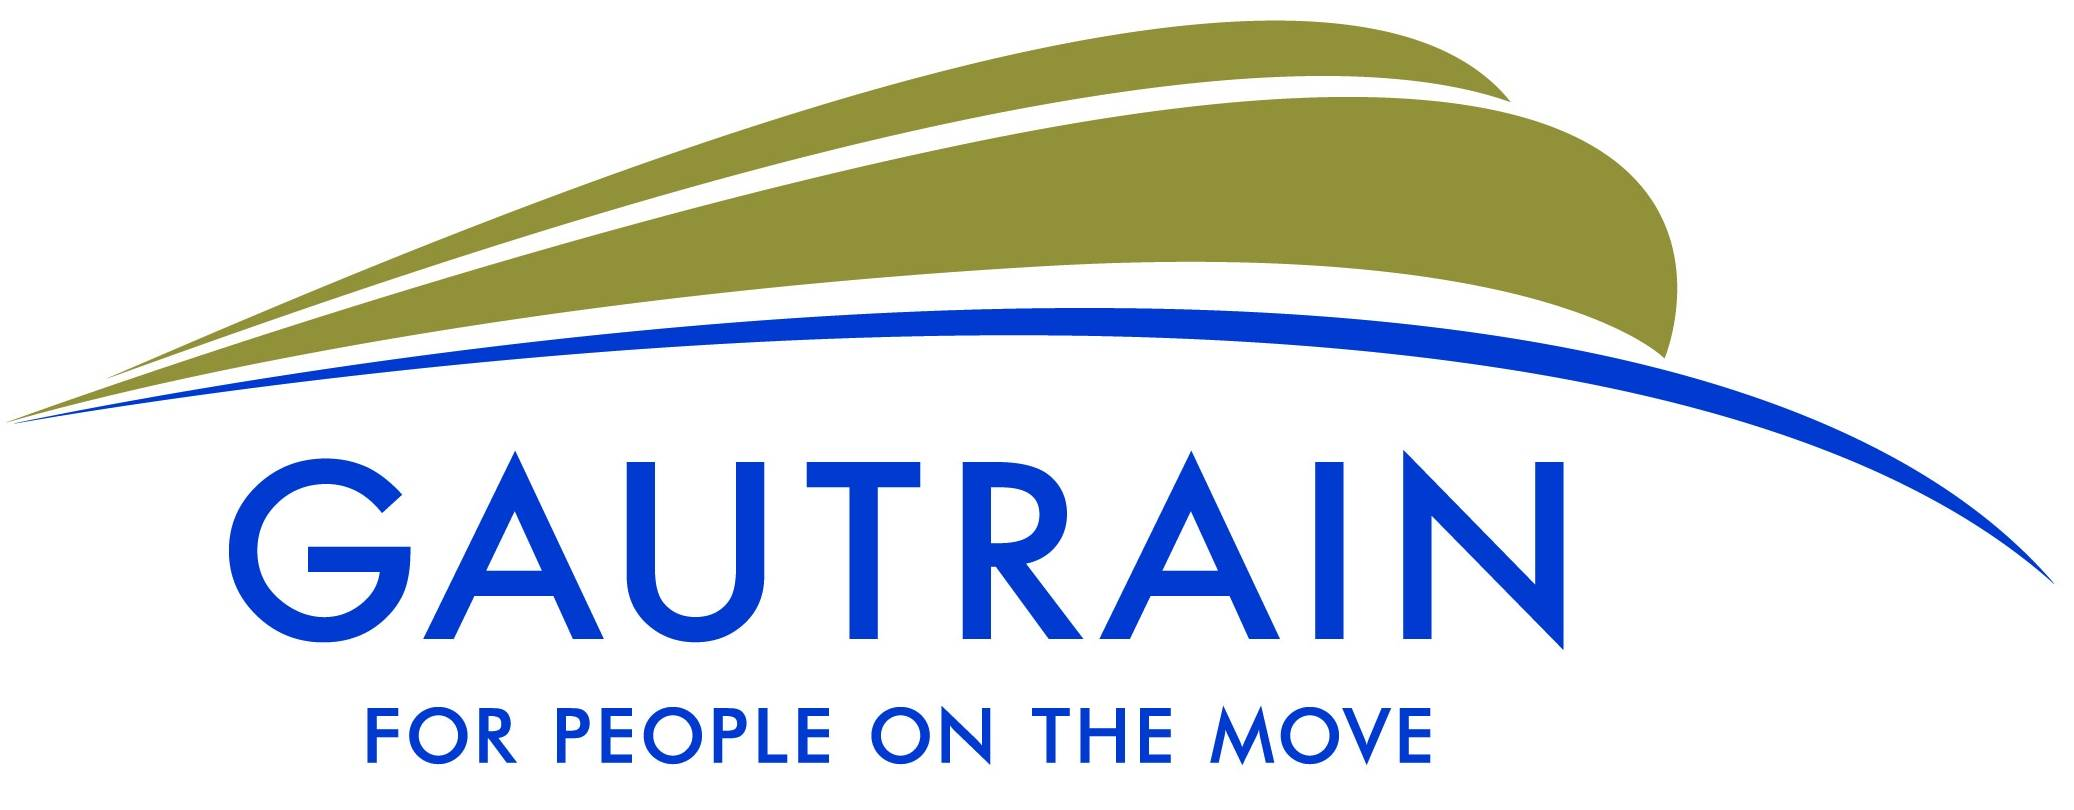 Gautrain, for People on the move